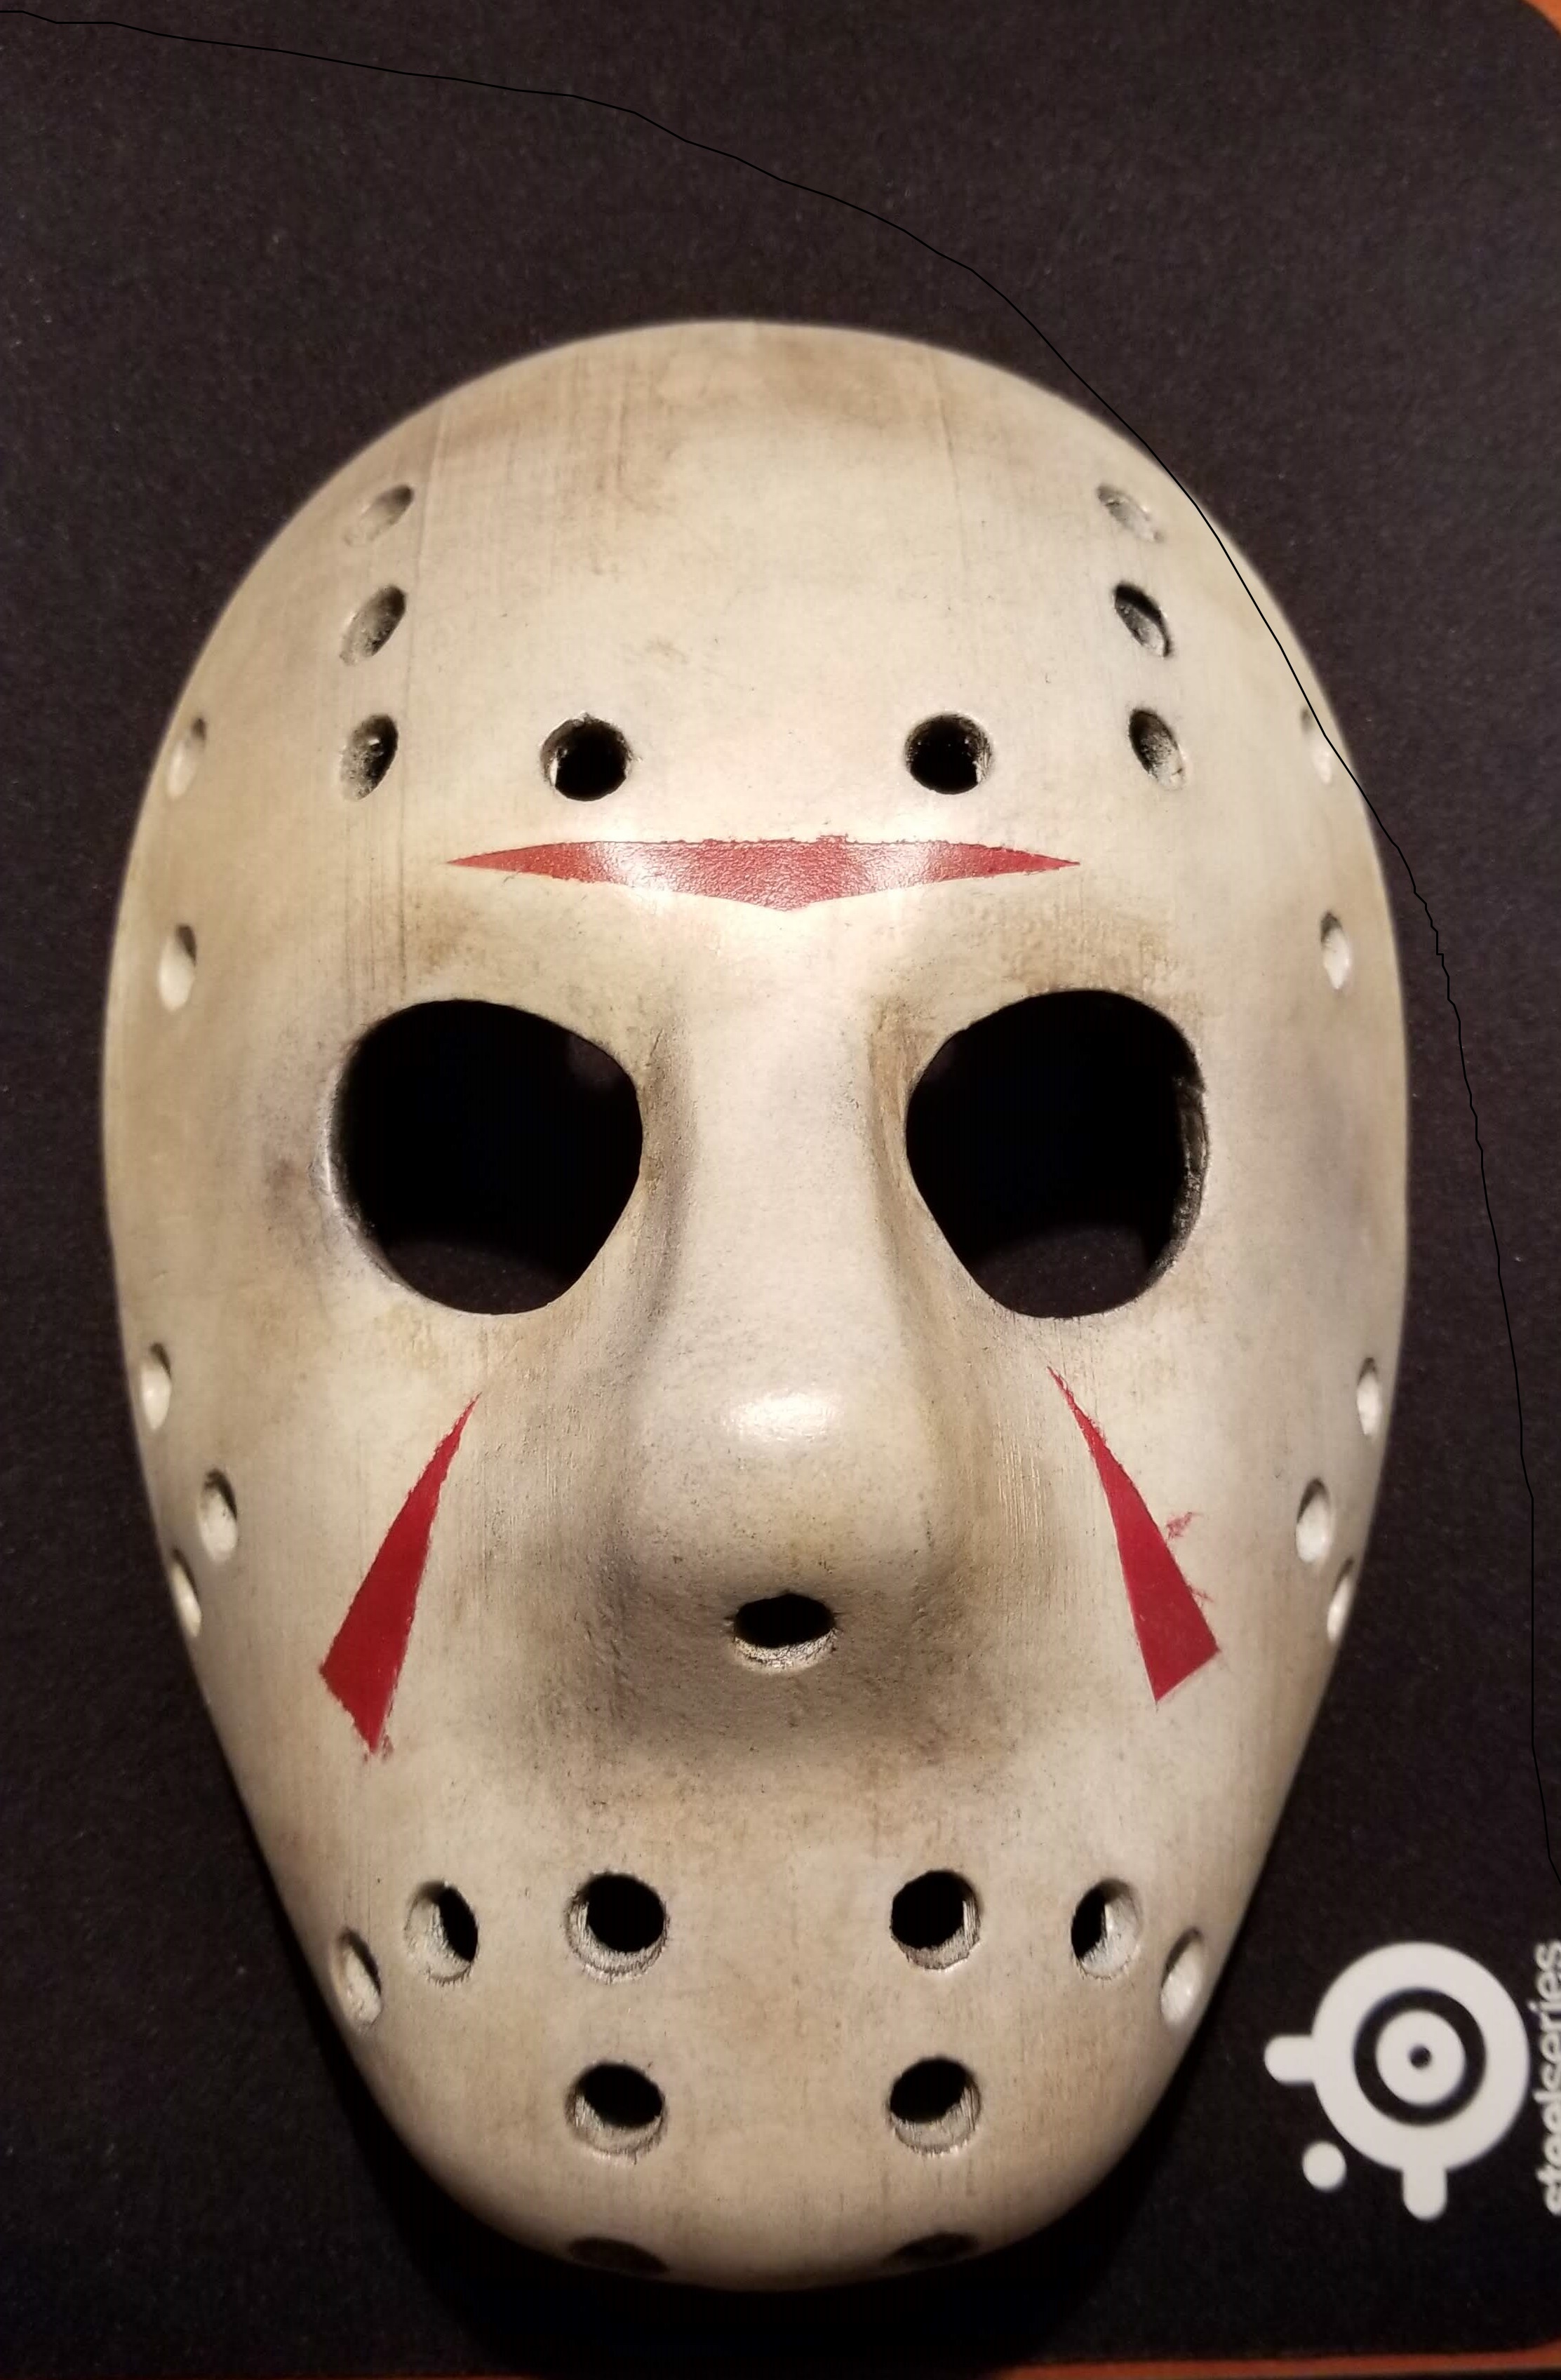 Picture Of Print Jason Mask Full Size This Has Been Uploaded By